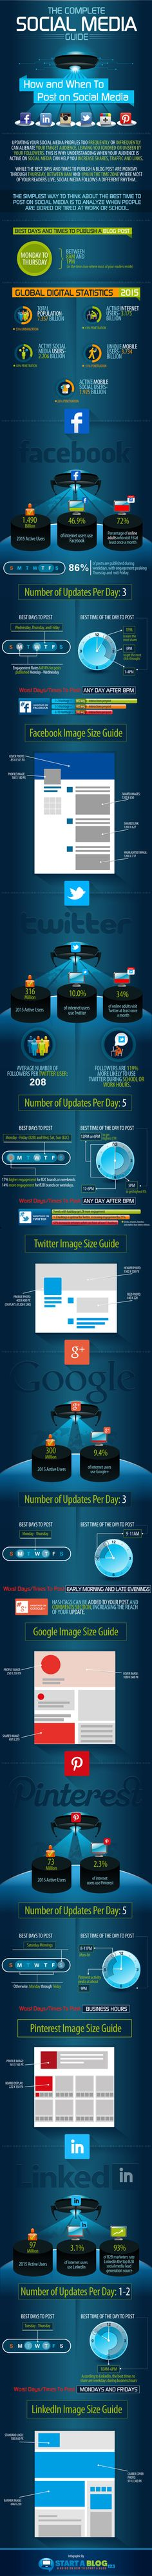 How and When to Post on Social Media #infographic #SocialMedia